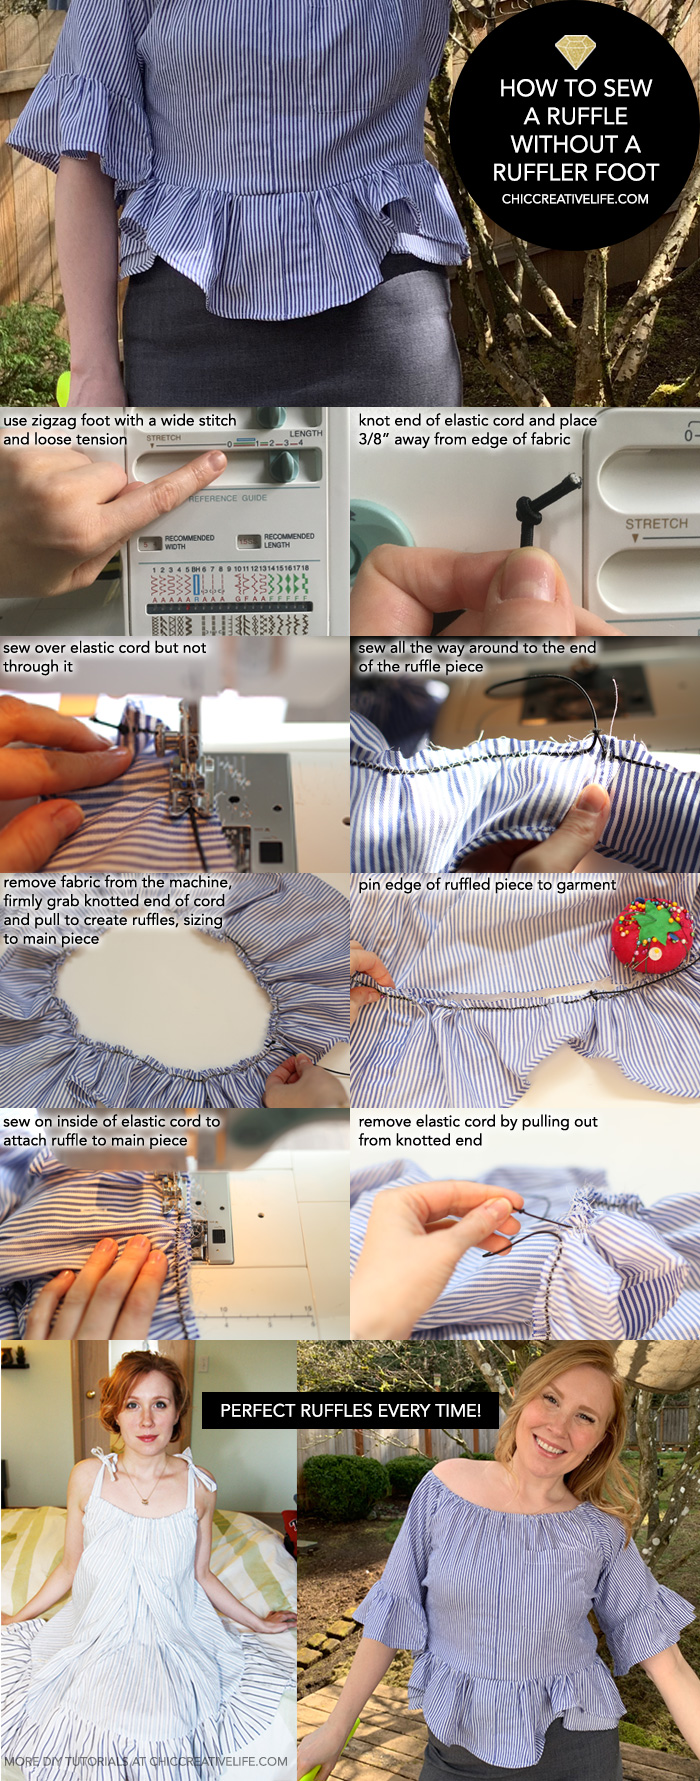 how to sew a ruffle without a ruffler foot step by step pinterest graphic chic creative life